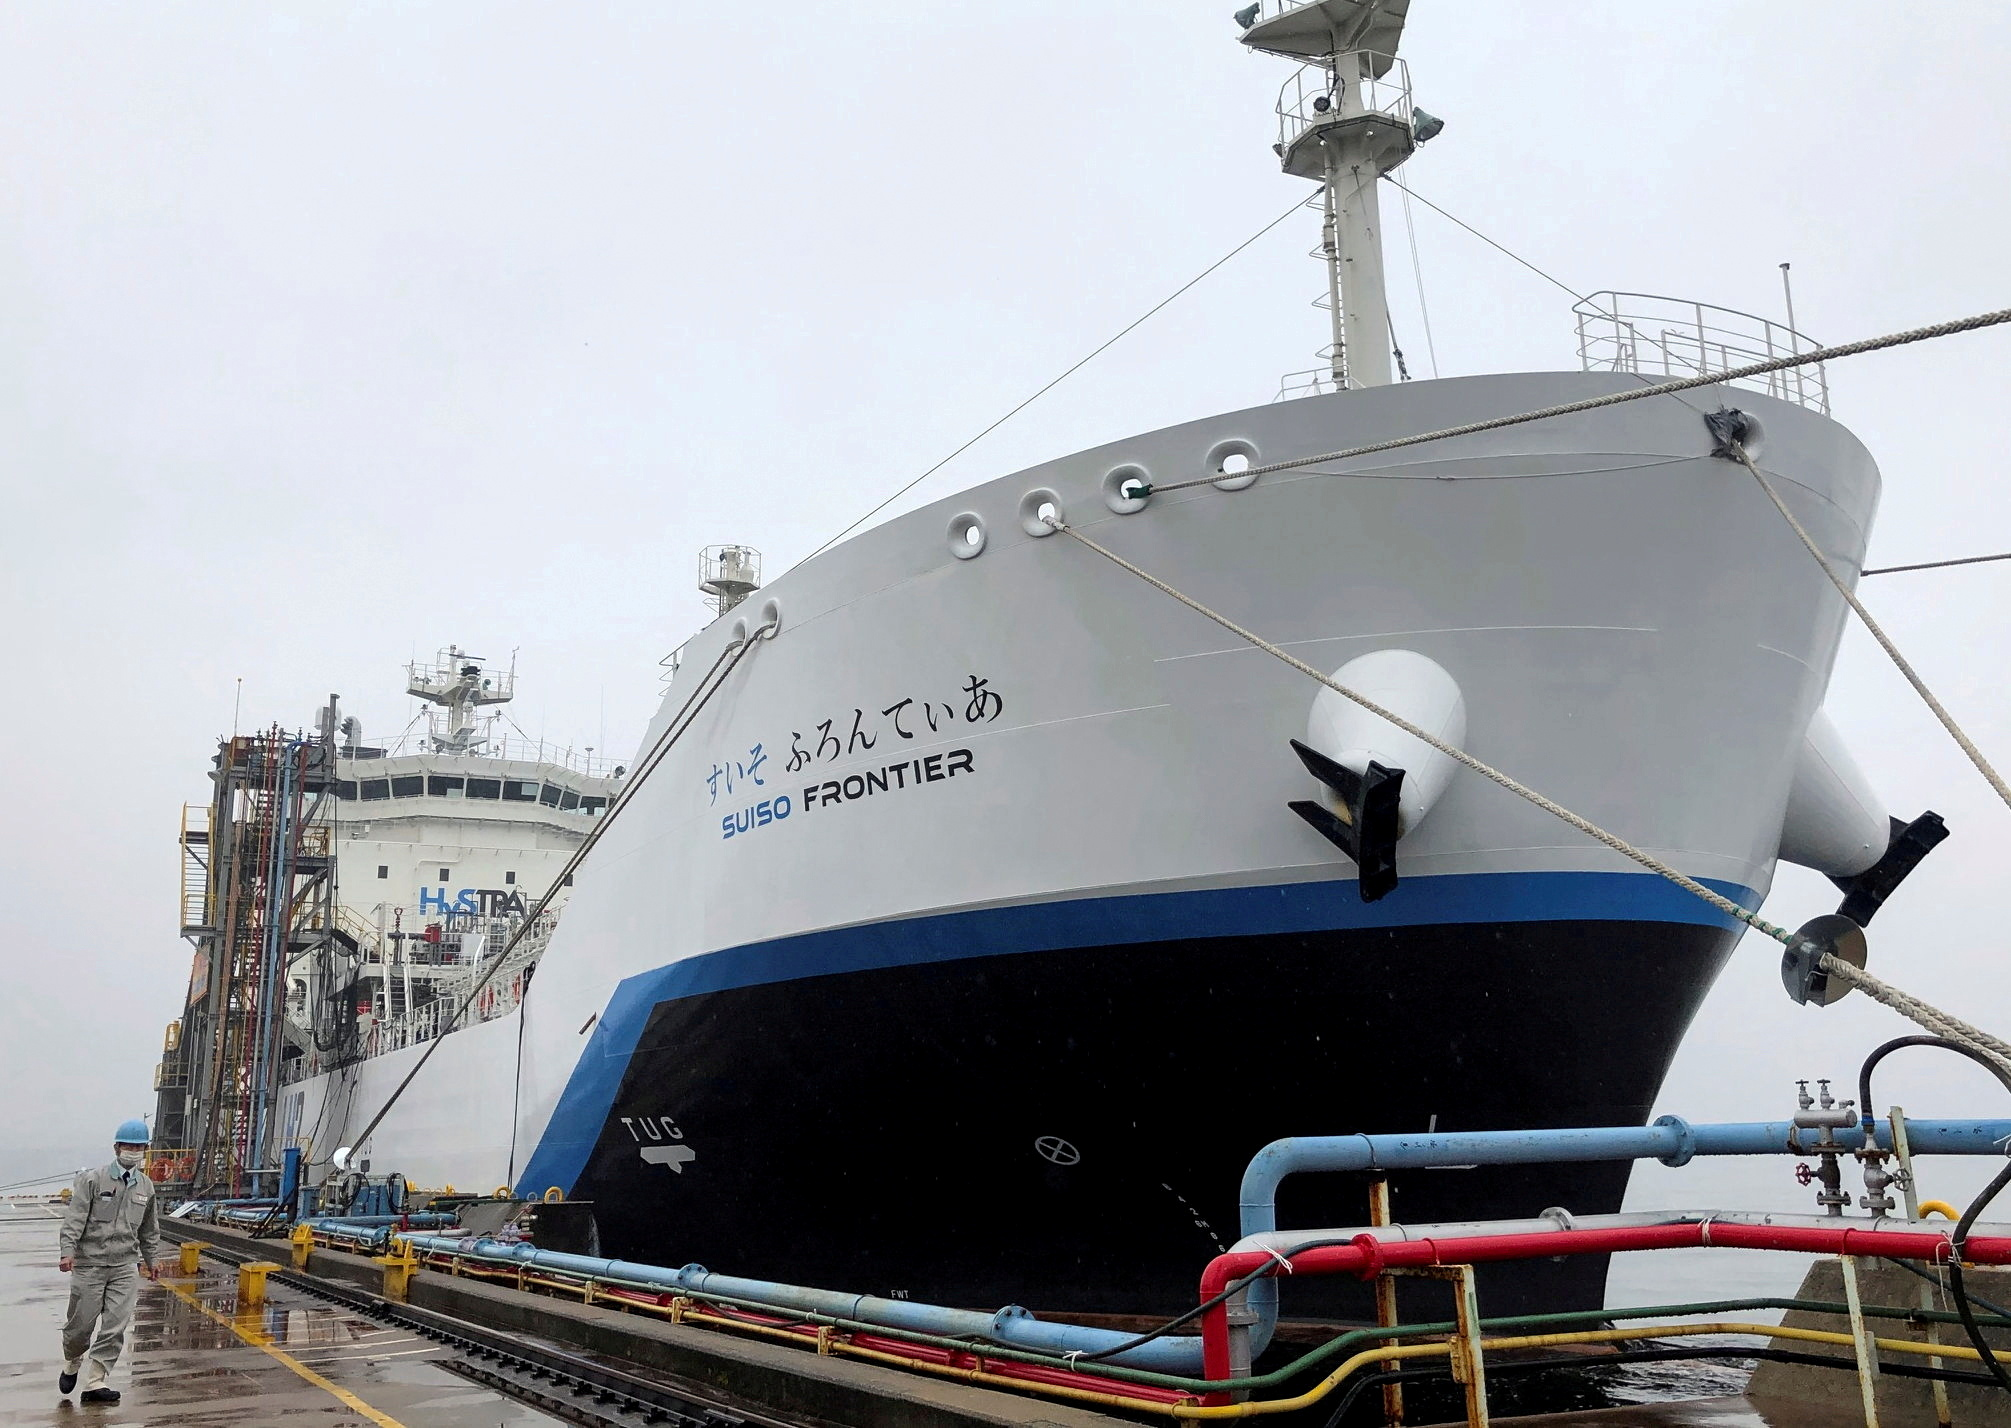 The liquefied hydrogen carrier SUISO FRONTIER, built by Kawasaki Heavy Industries and due to transport its first cargo of hydrogen extracted from brown coal from Australia to Japan, is docked at Kobe Works yard in Kobe, western Japan January 22, 2021. Picture taken January 22, 2021.  REUTERS/Yuka Obayashi